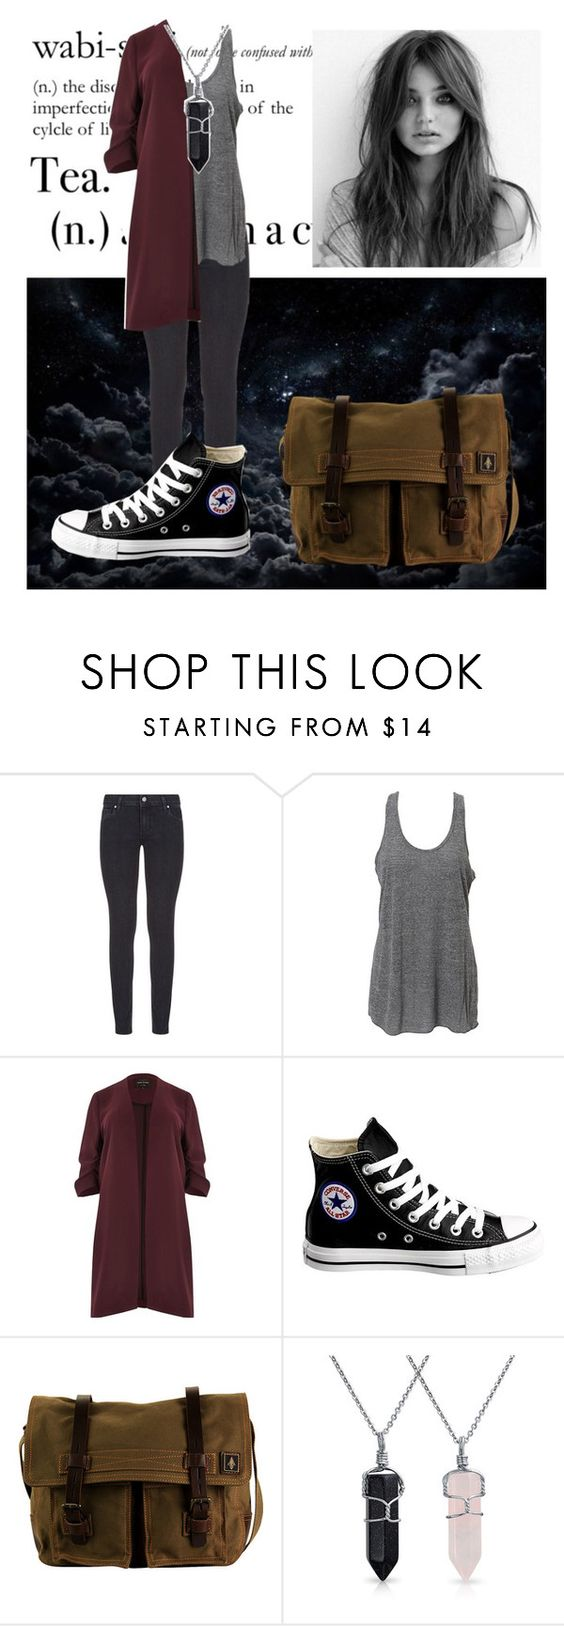 """""""The women in converses"""" by captain-chan ❤ liked on Polyvore featuring Paige Denim, Simplex Apparel, River Island, Converse, DamnDog, Bling Jewelry and plus size clothing"""